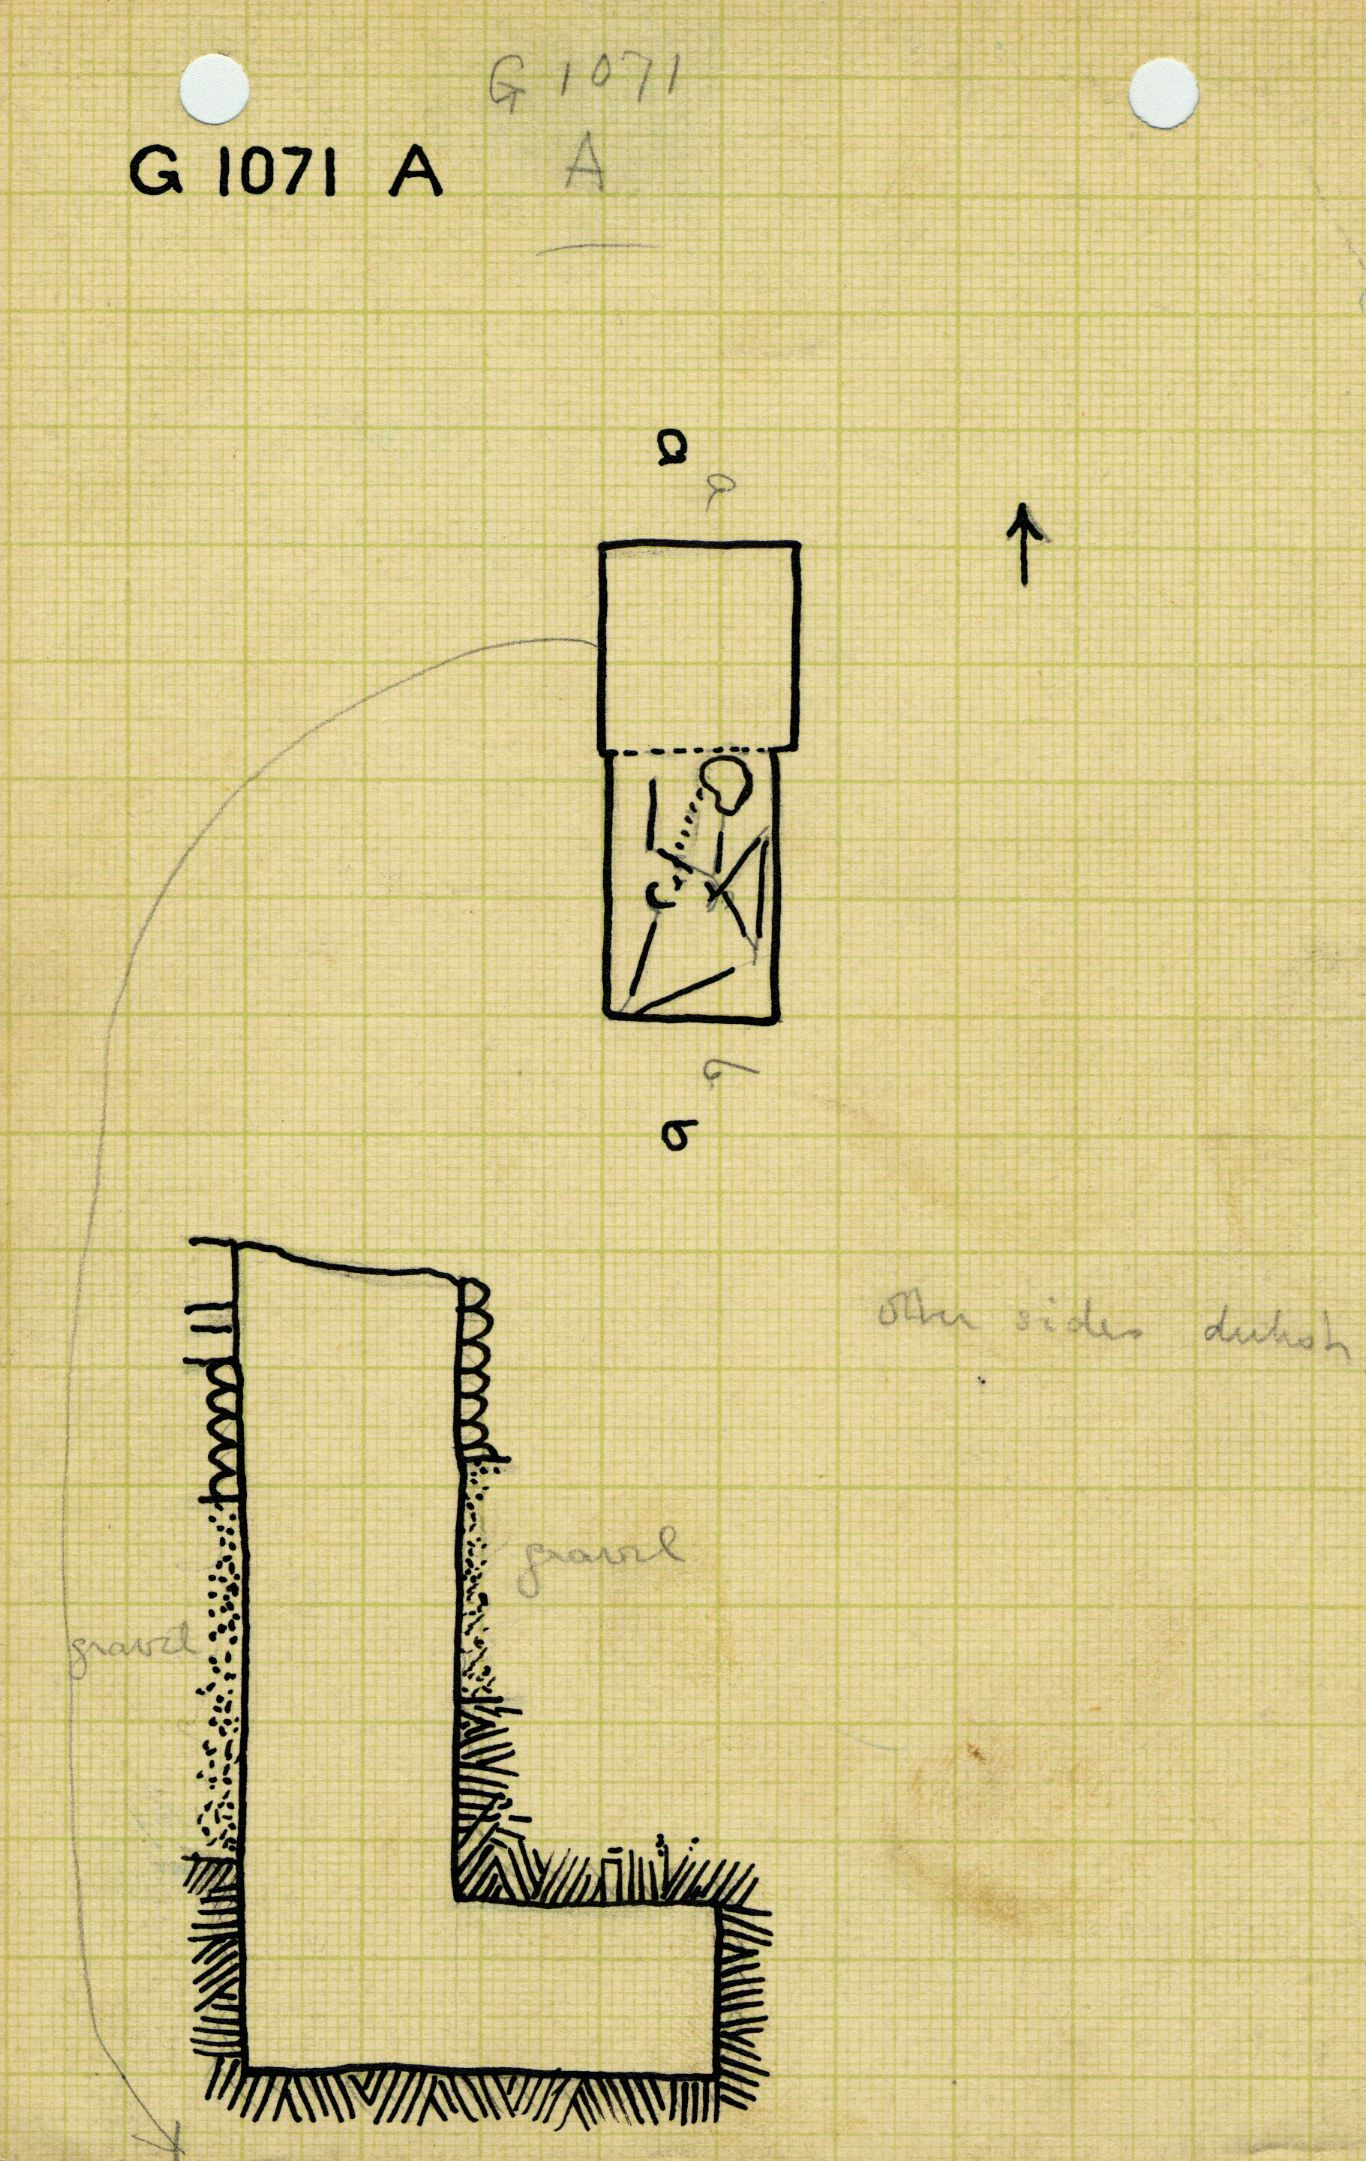 Maps and plans: G 1071, Shaft A